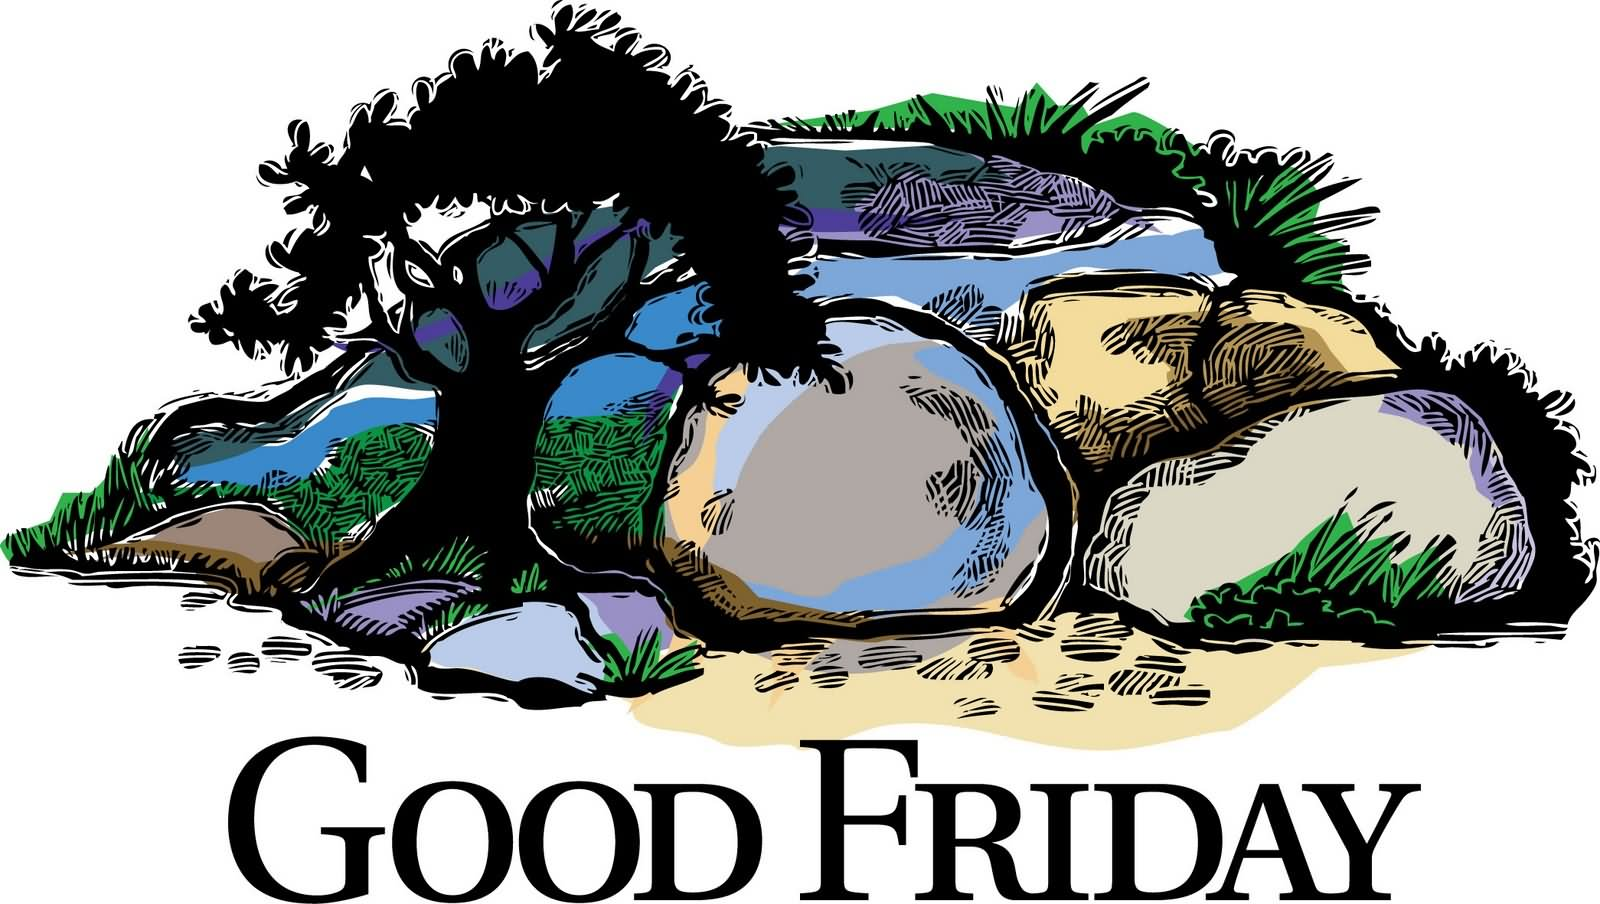 1600x904 Good Friday Clip Art, Blessings, Sayings Free Download For Kids